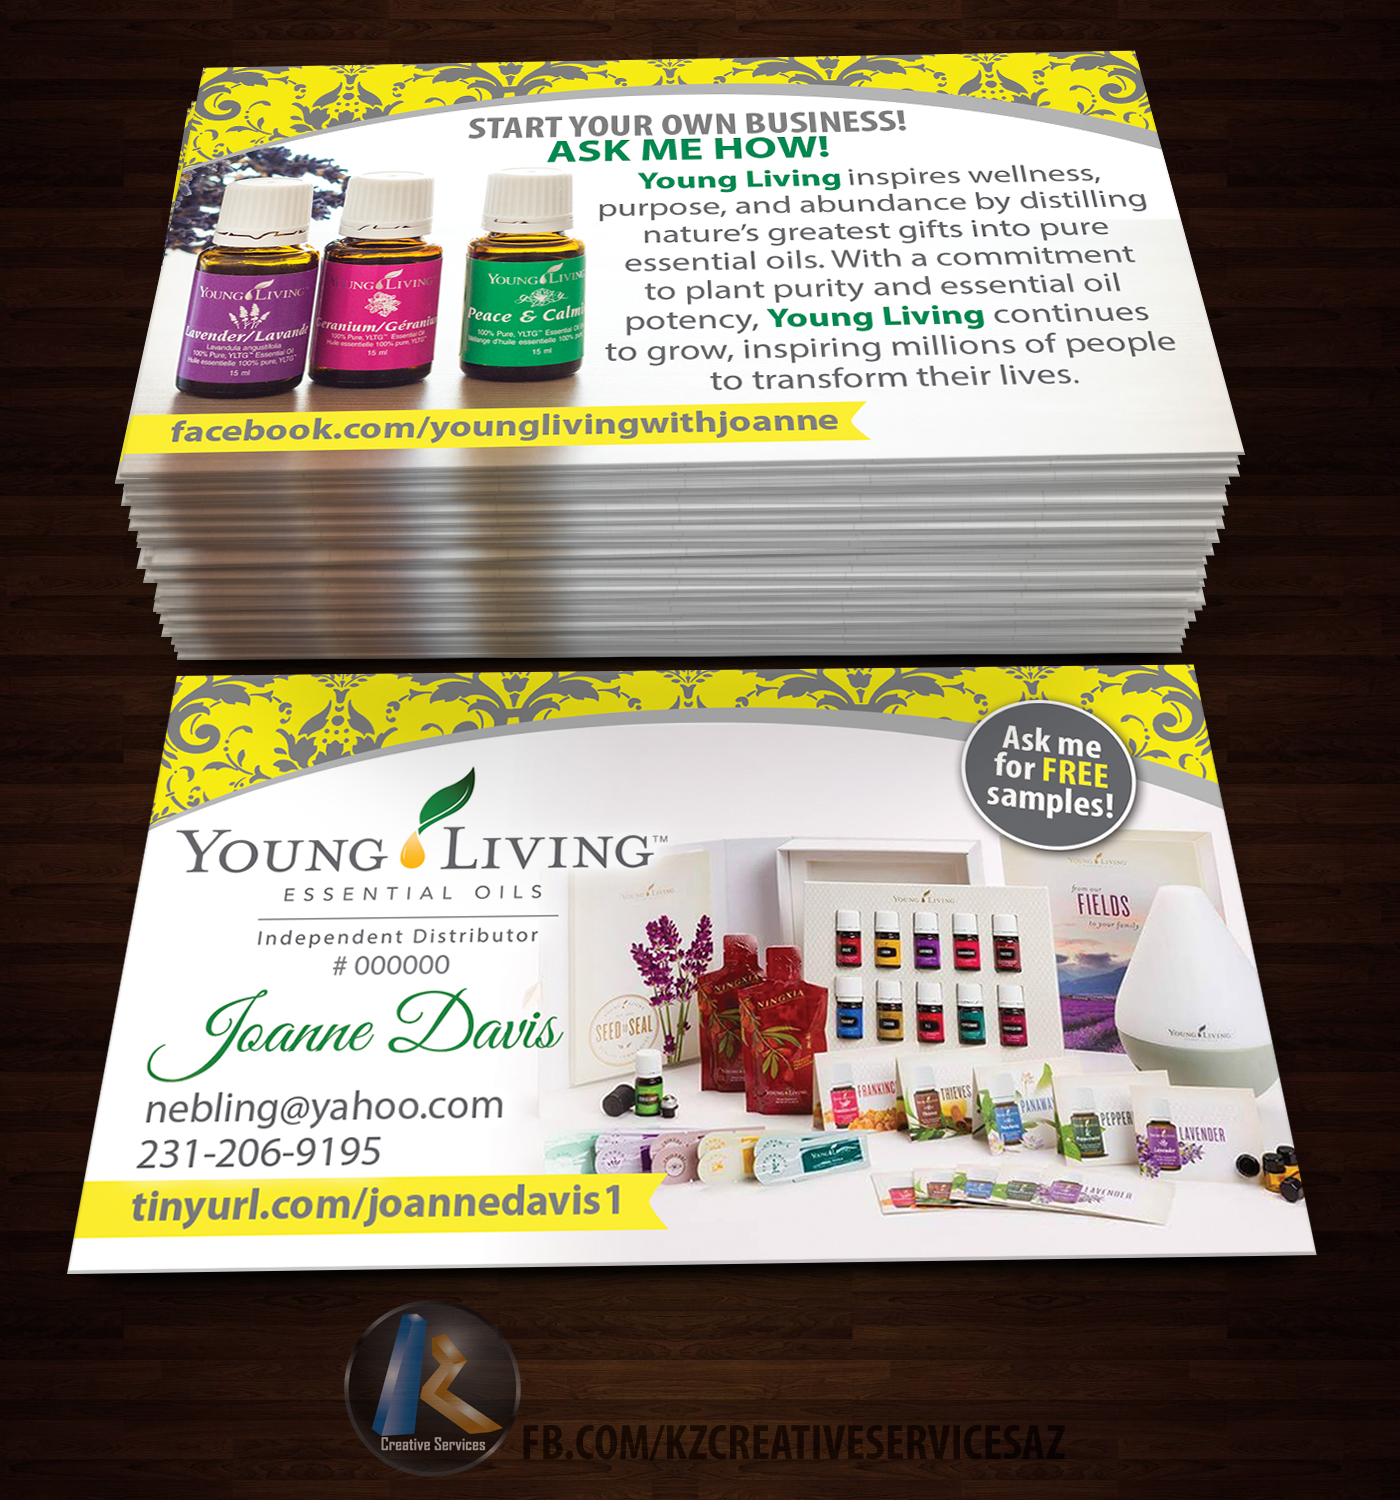 Young living business card 5 kz creative services online store young living business card 5 colourmoves